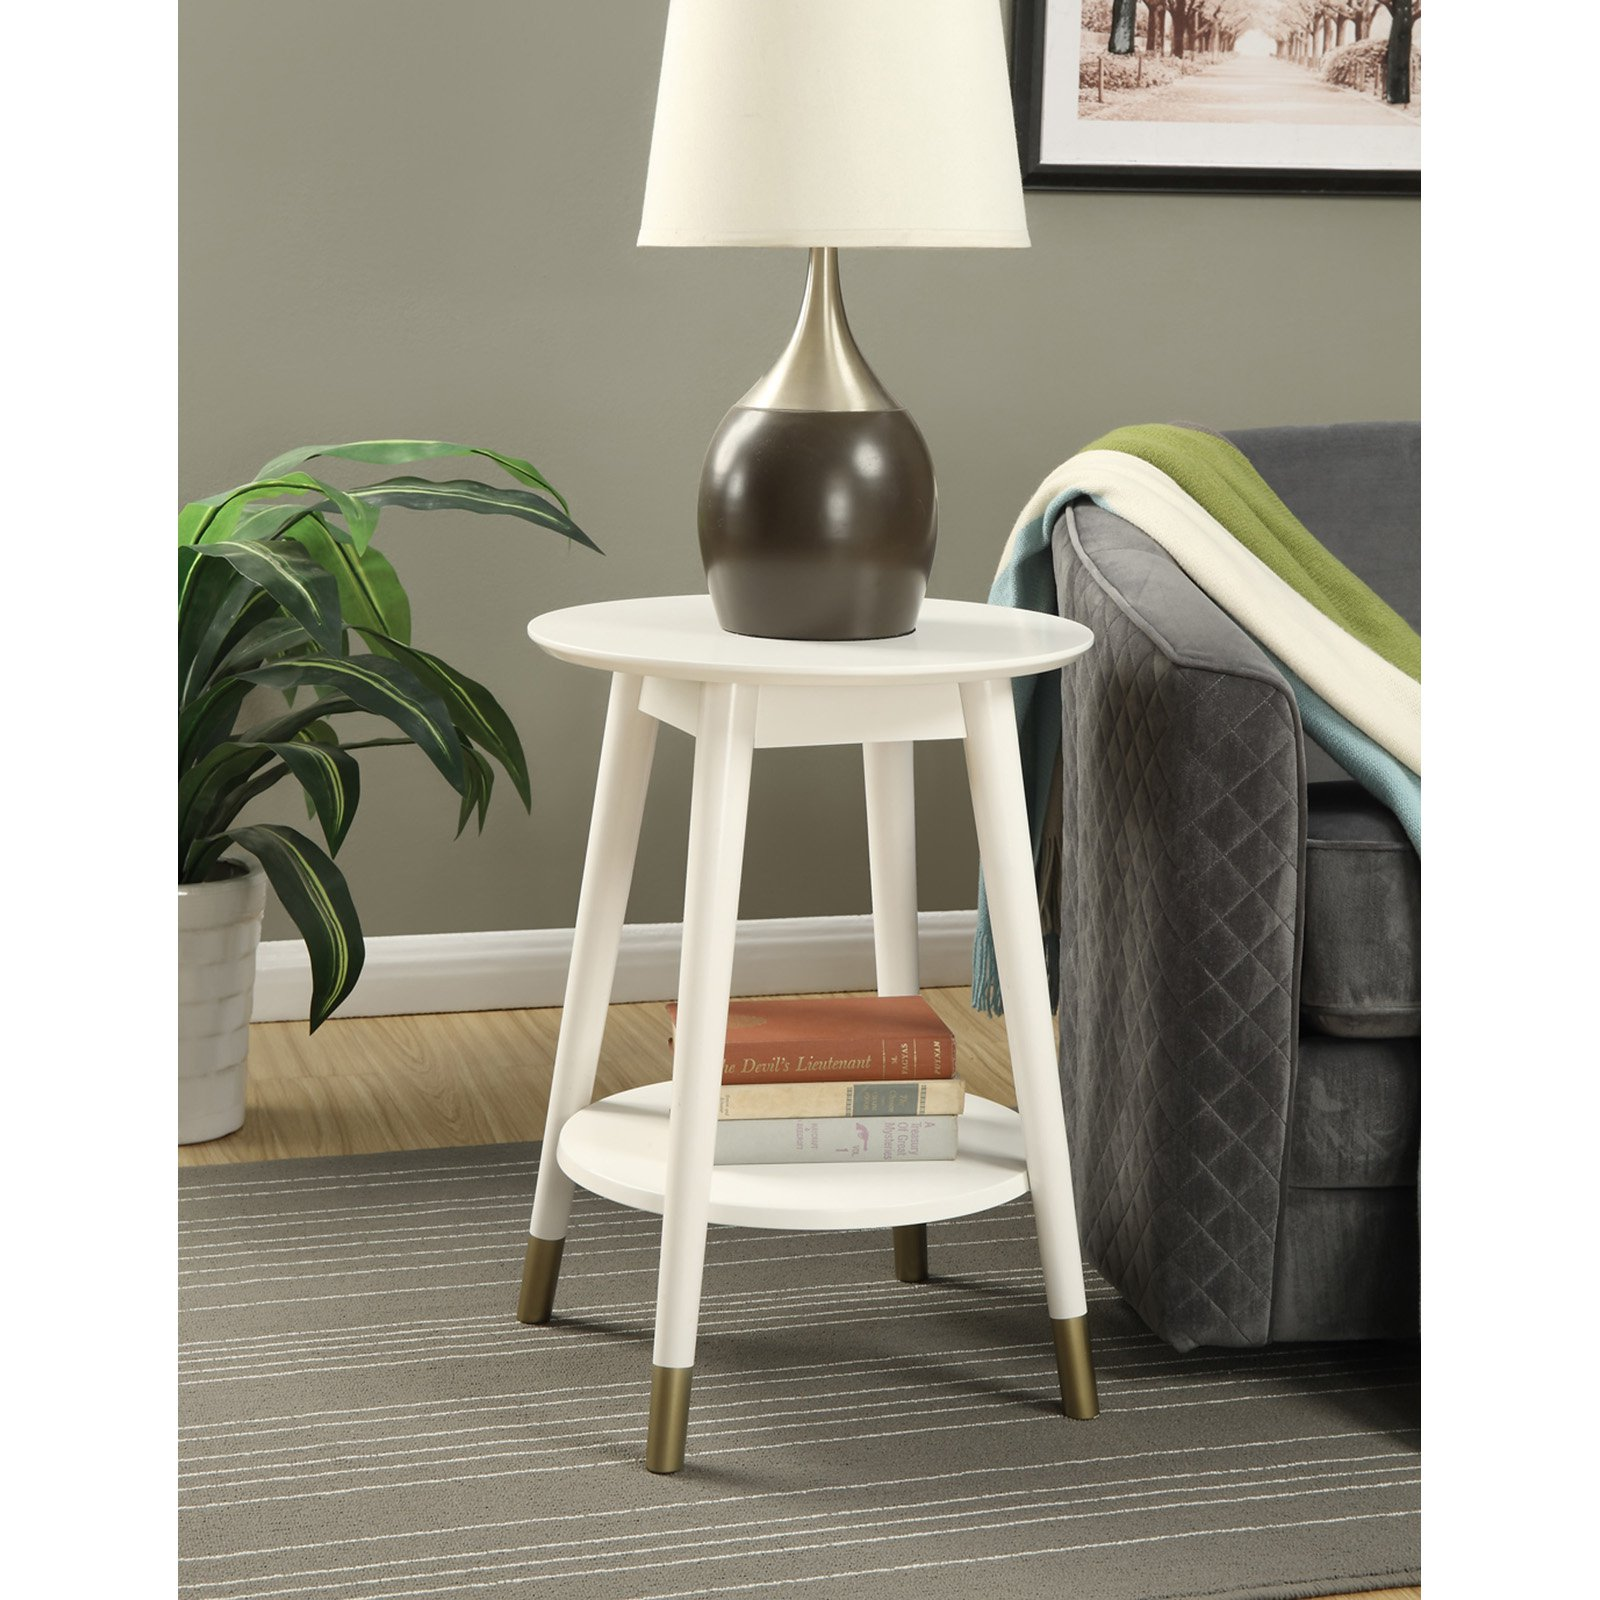 Convenience Concepts Wilson Mid-Century Round End Table with Bottom Shelf